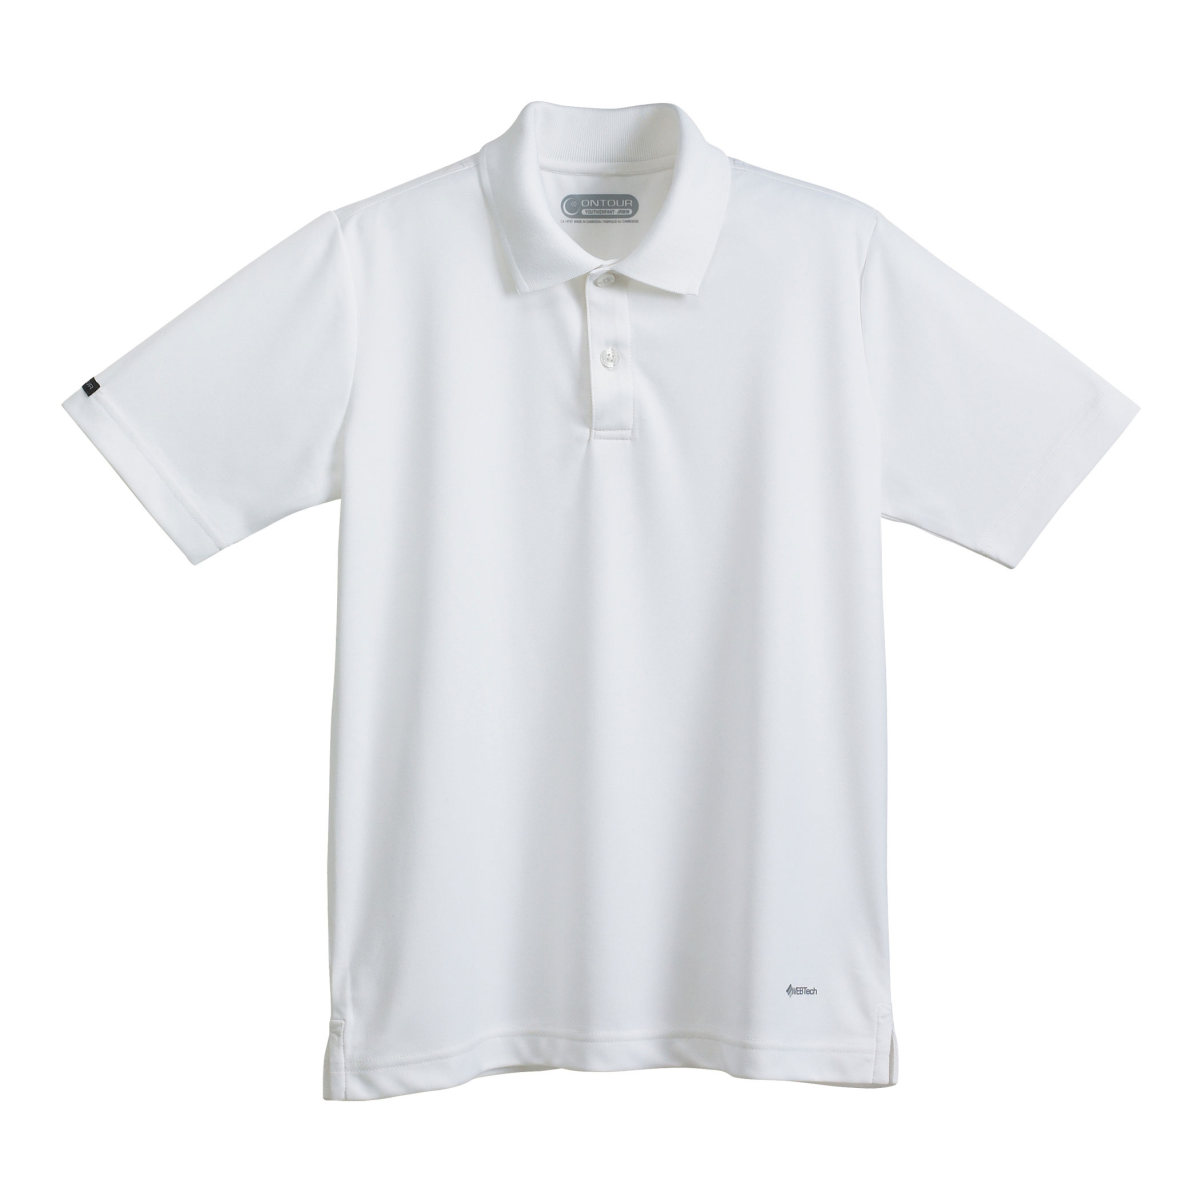 ef35222970f63 Buy (Y) MORENO Short sleeve polo - Trimark Online at Best price - WA